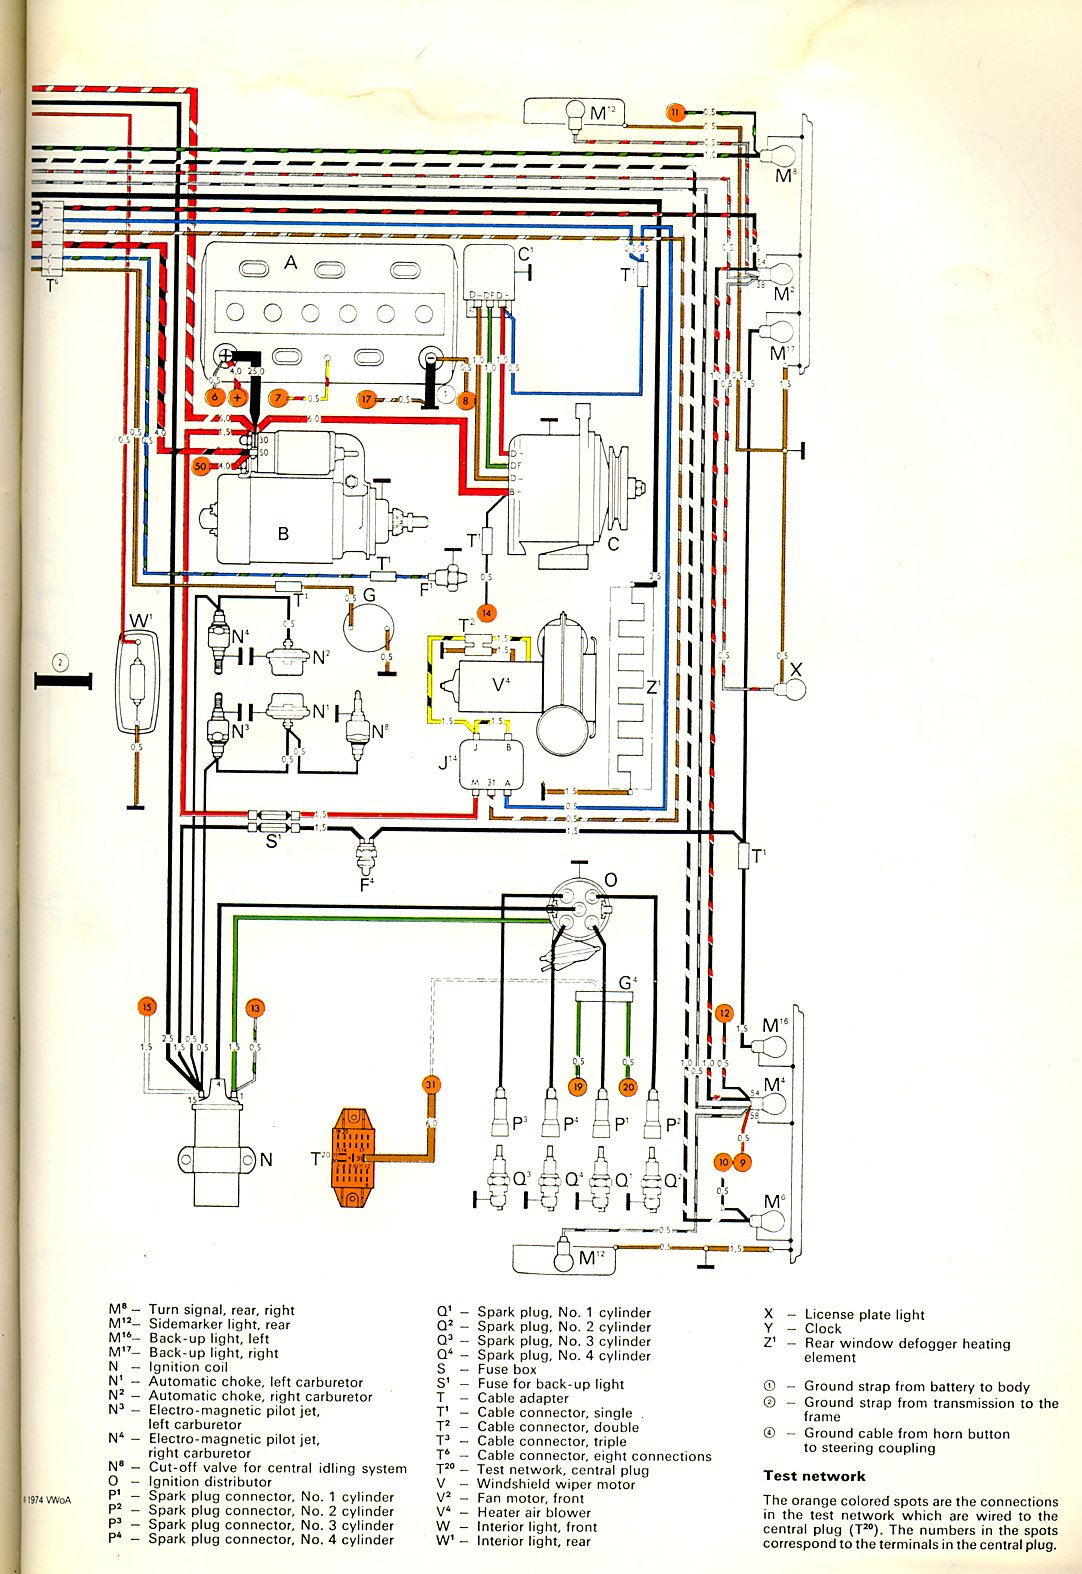 thesamba.com :: type 2 wiring diagrams 1977 f100 wiring diagram 1977 vw wiring diagram #9